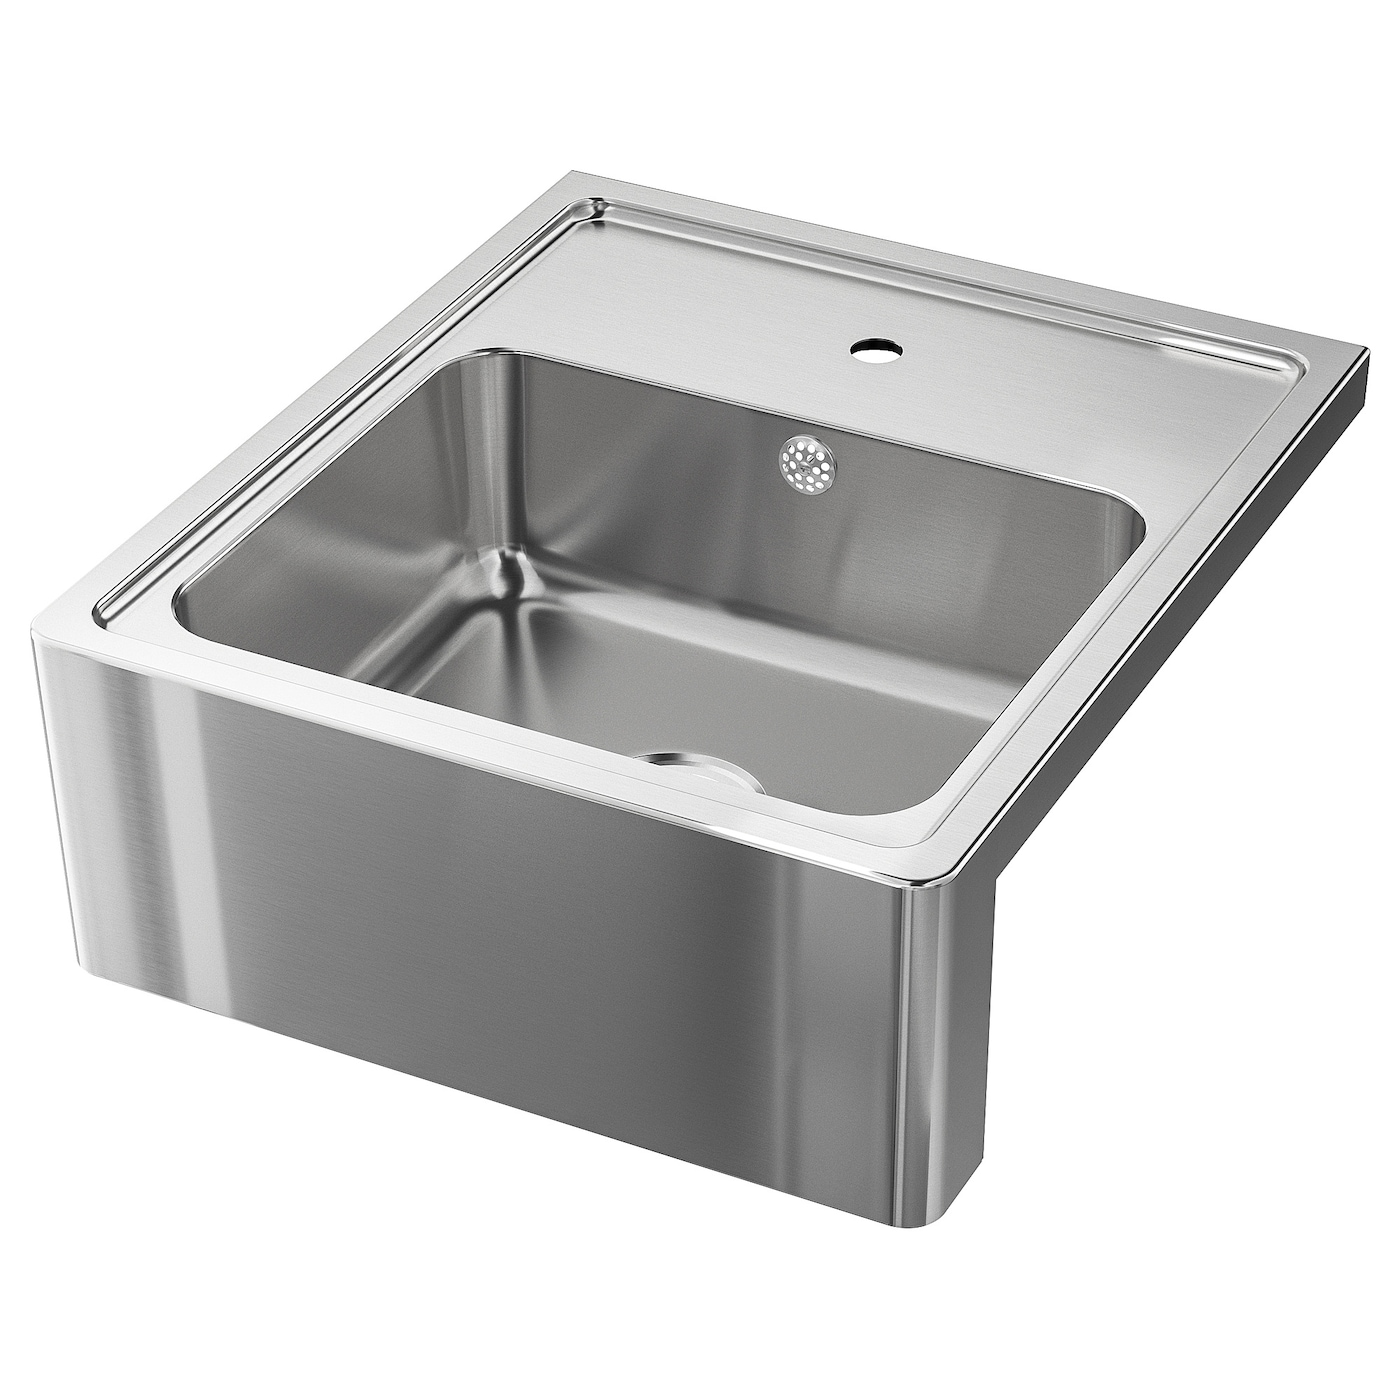 IKEA BREDSJÖN sink bowl w visible front Has a pre-drilled hole for a kitchen mixer tap.